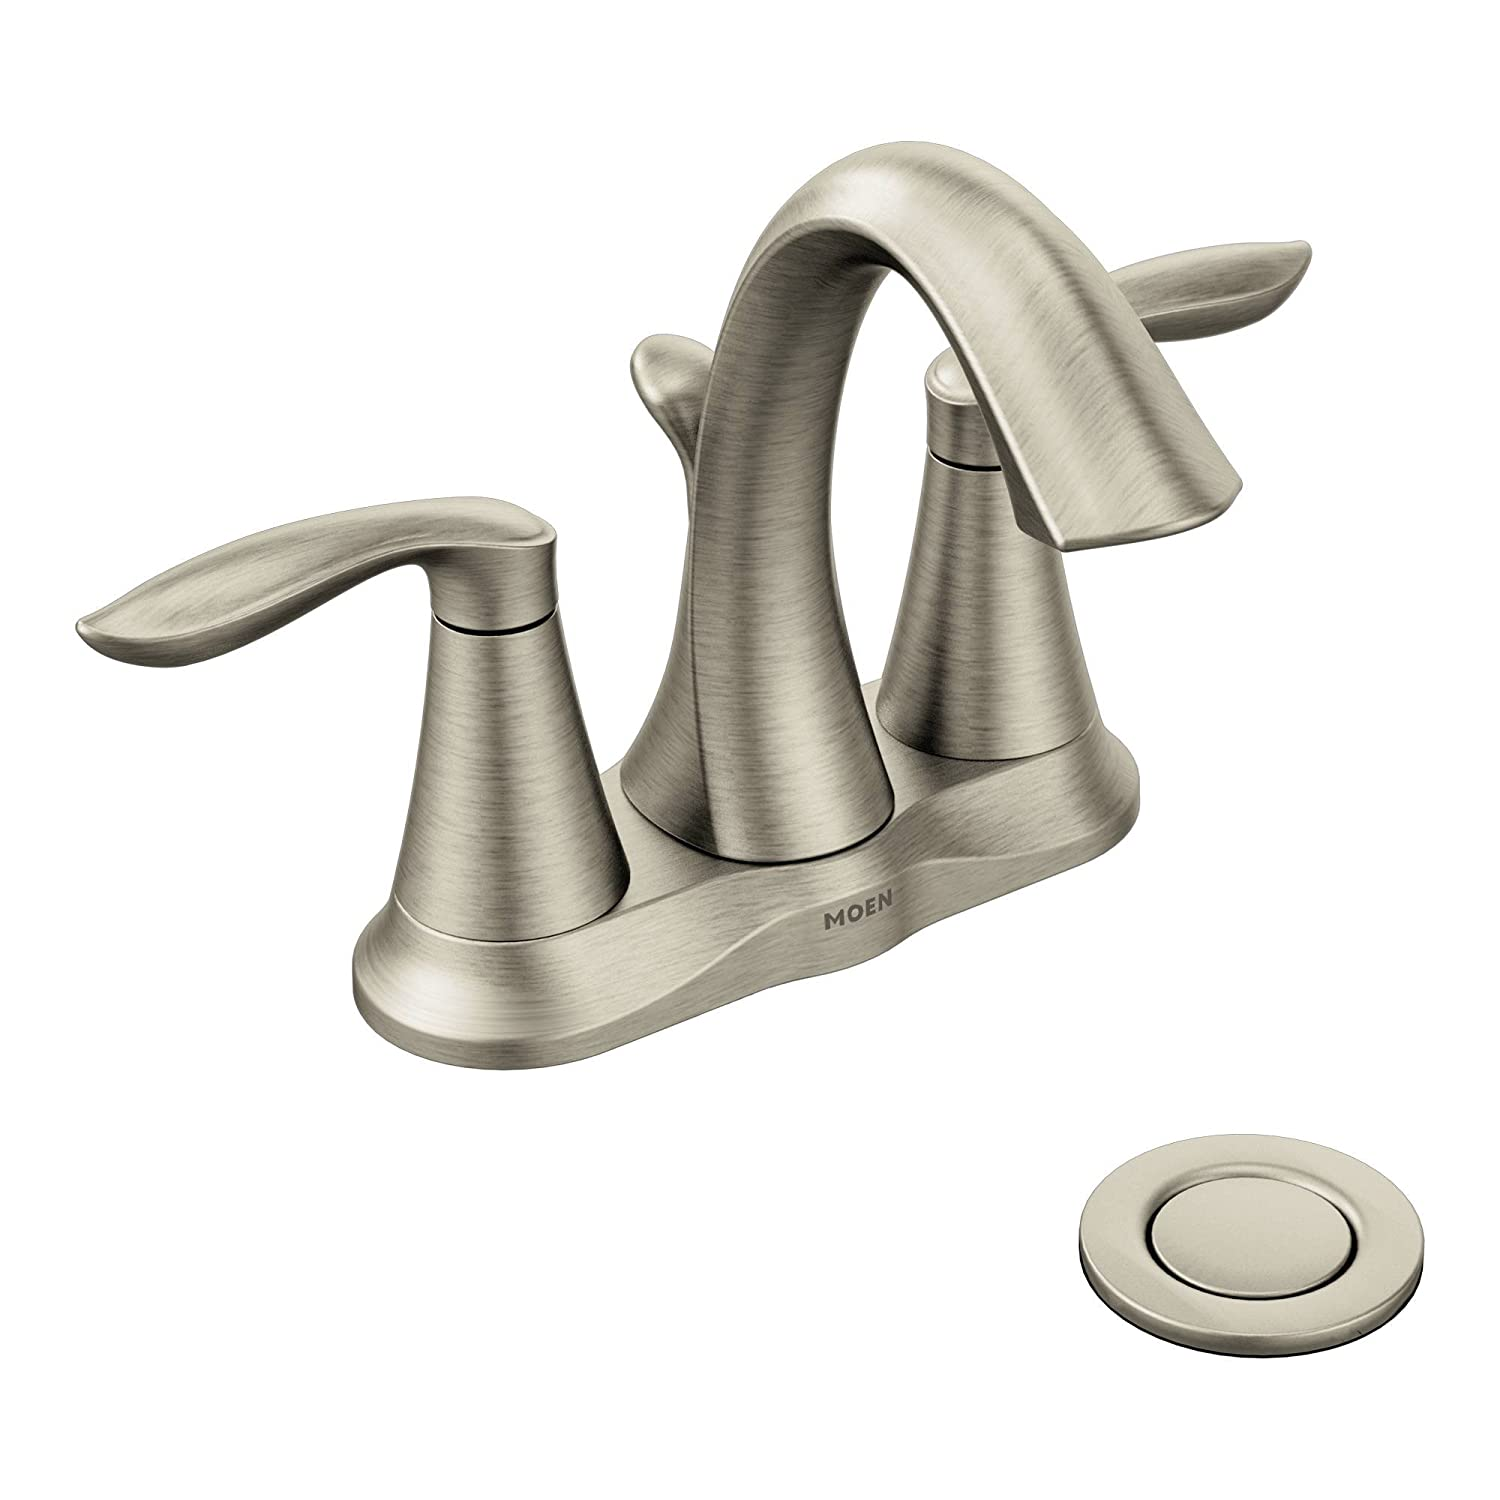 Amazon.com: Moen Eva Two Handle Centerset Bathroom Faucet With Drain  Assembly, Brushed Nickel (6410BN): Home Improvement